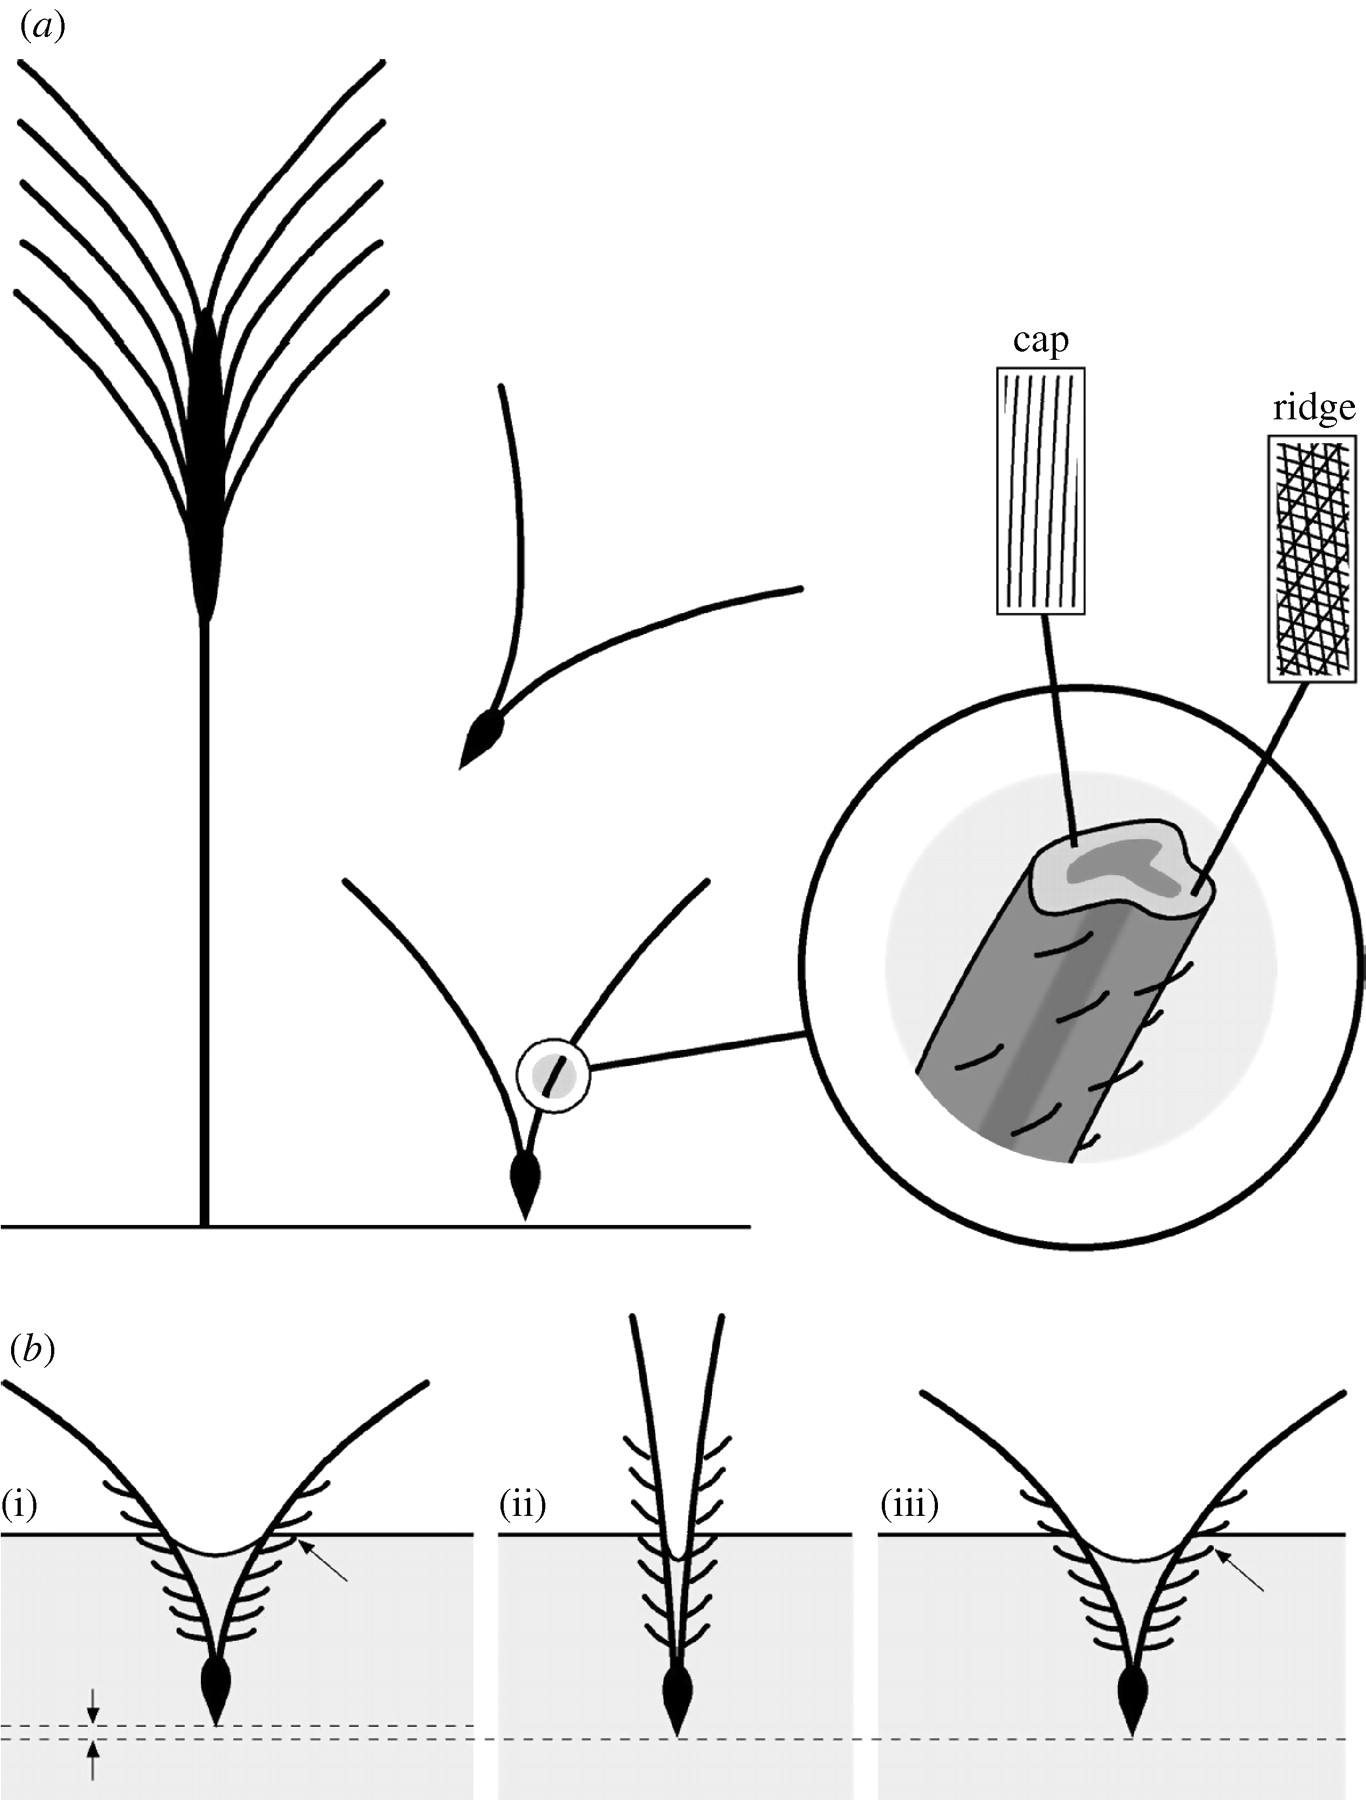 1366x1800 Actuation Systems In Plants As Prototypes For Bioinspired Devices